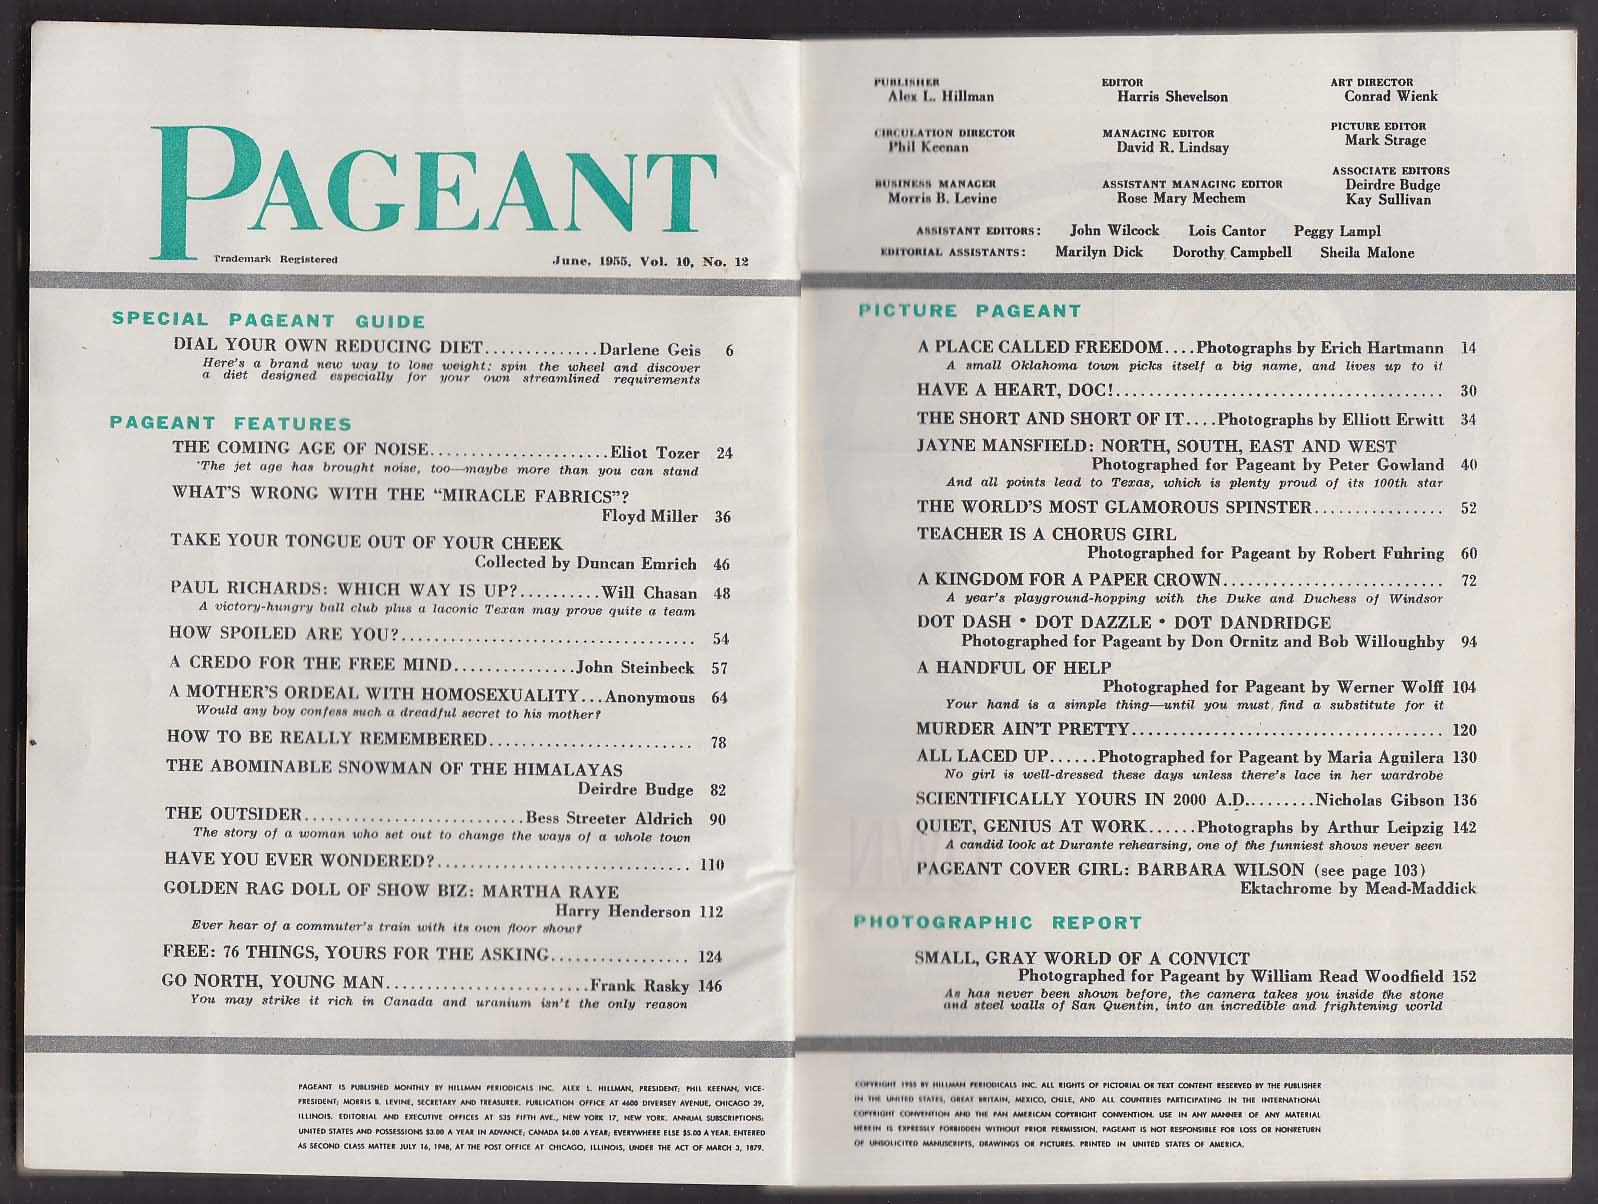 PAGEANT Paul Richards Jayne Mansfield Barbara Wilson Martha Raye ++ 6 1955